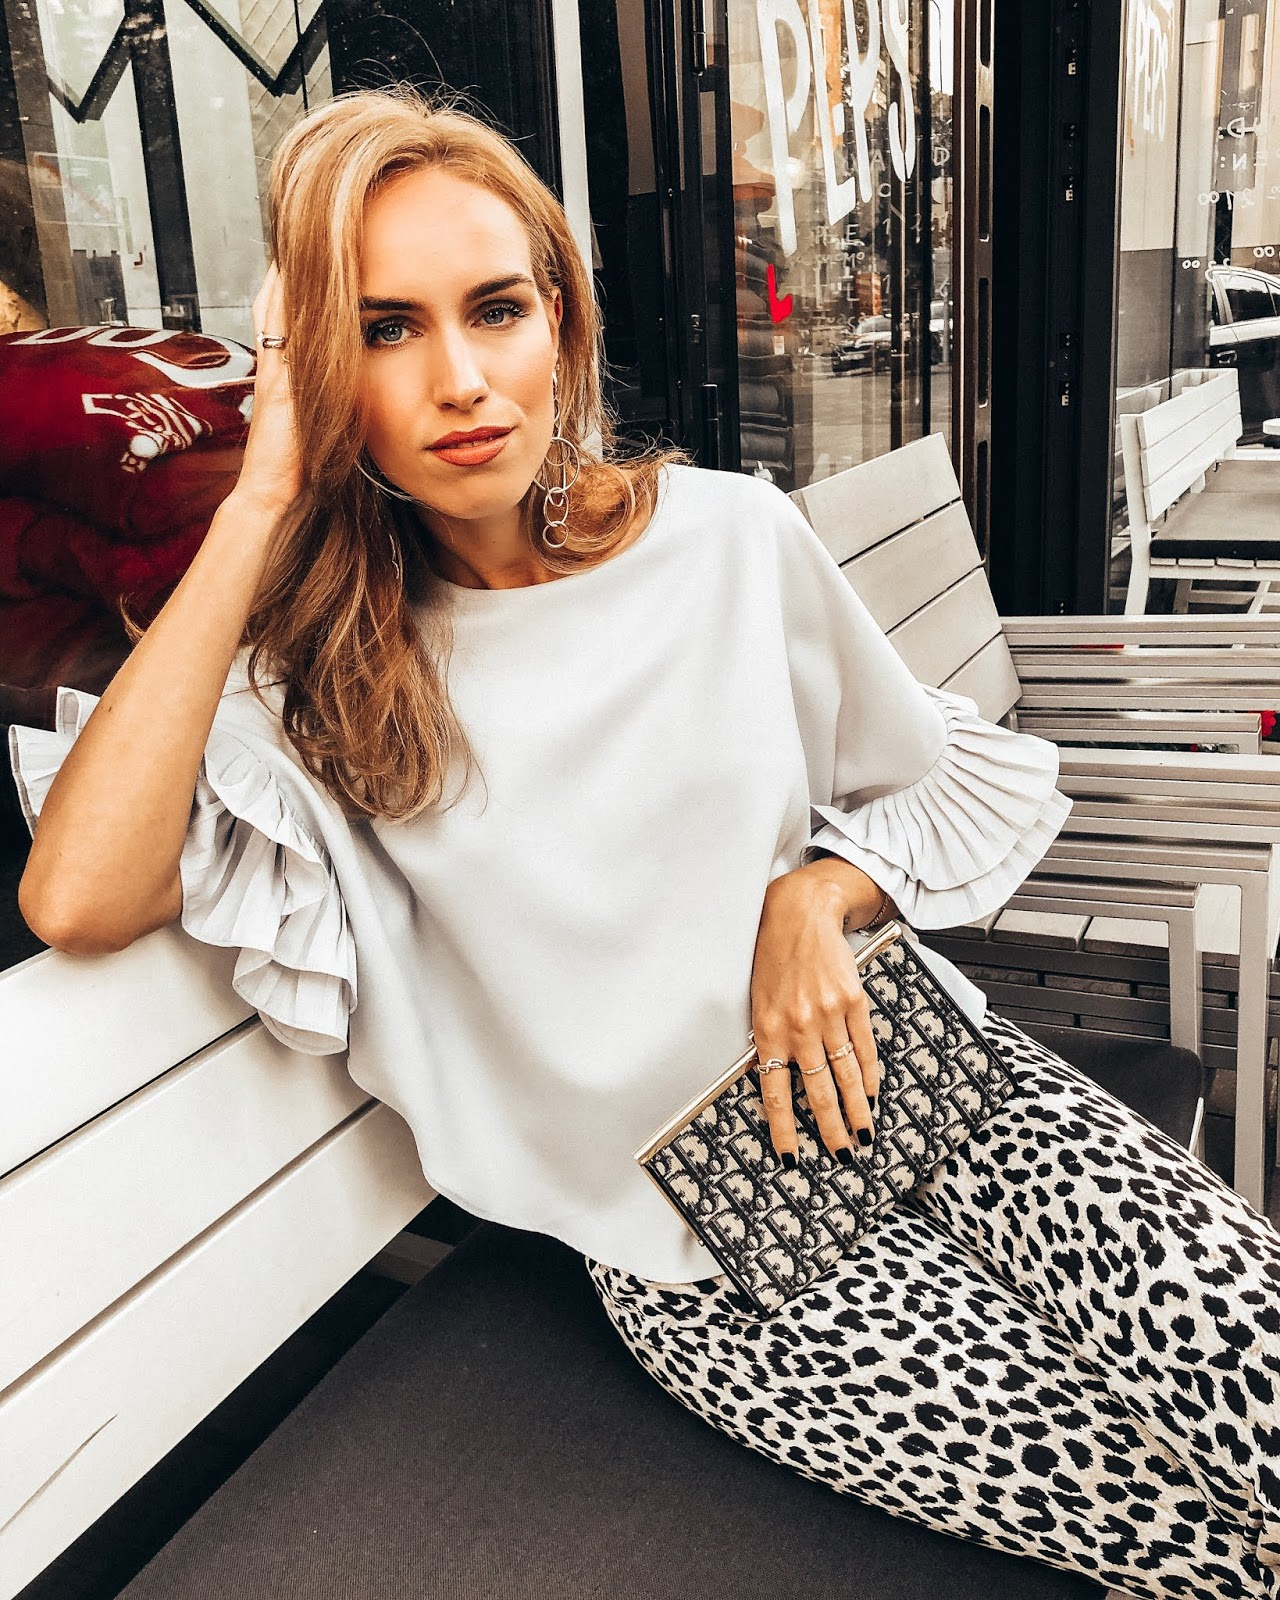 leopard print trousers ruffle sleeve top outfit